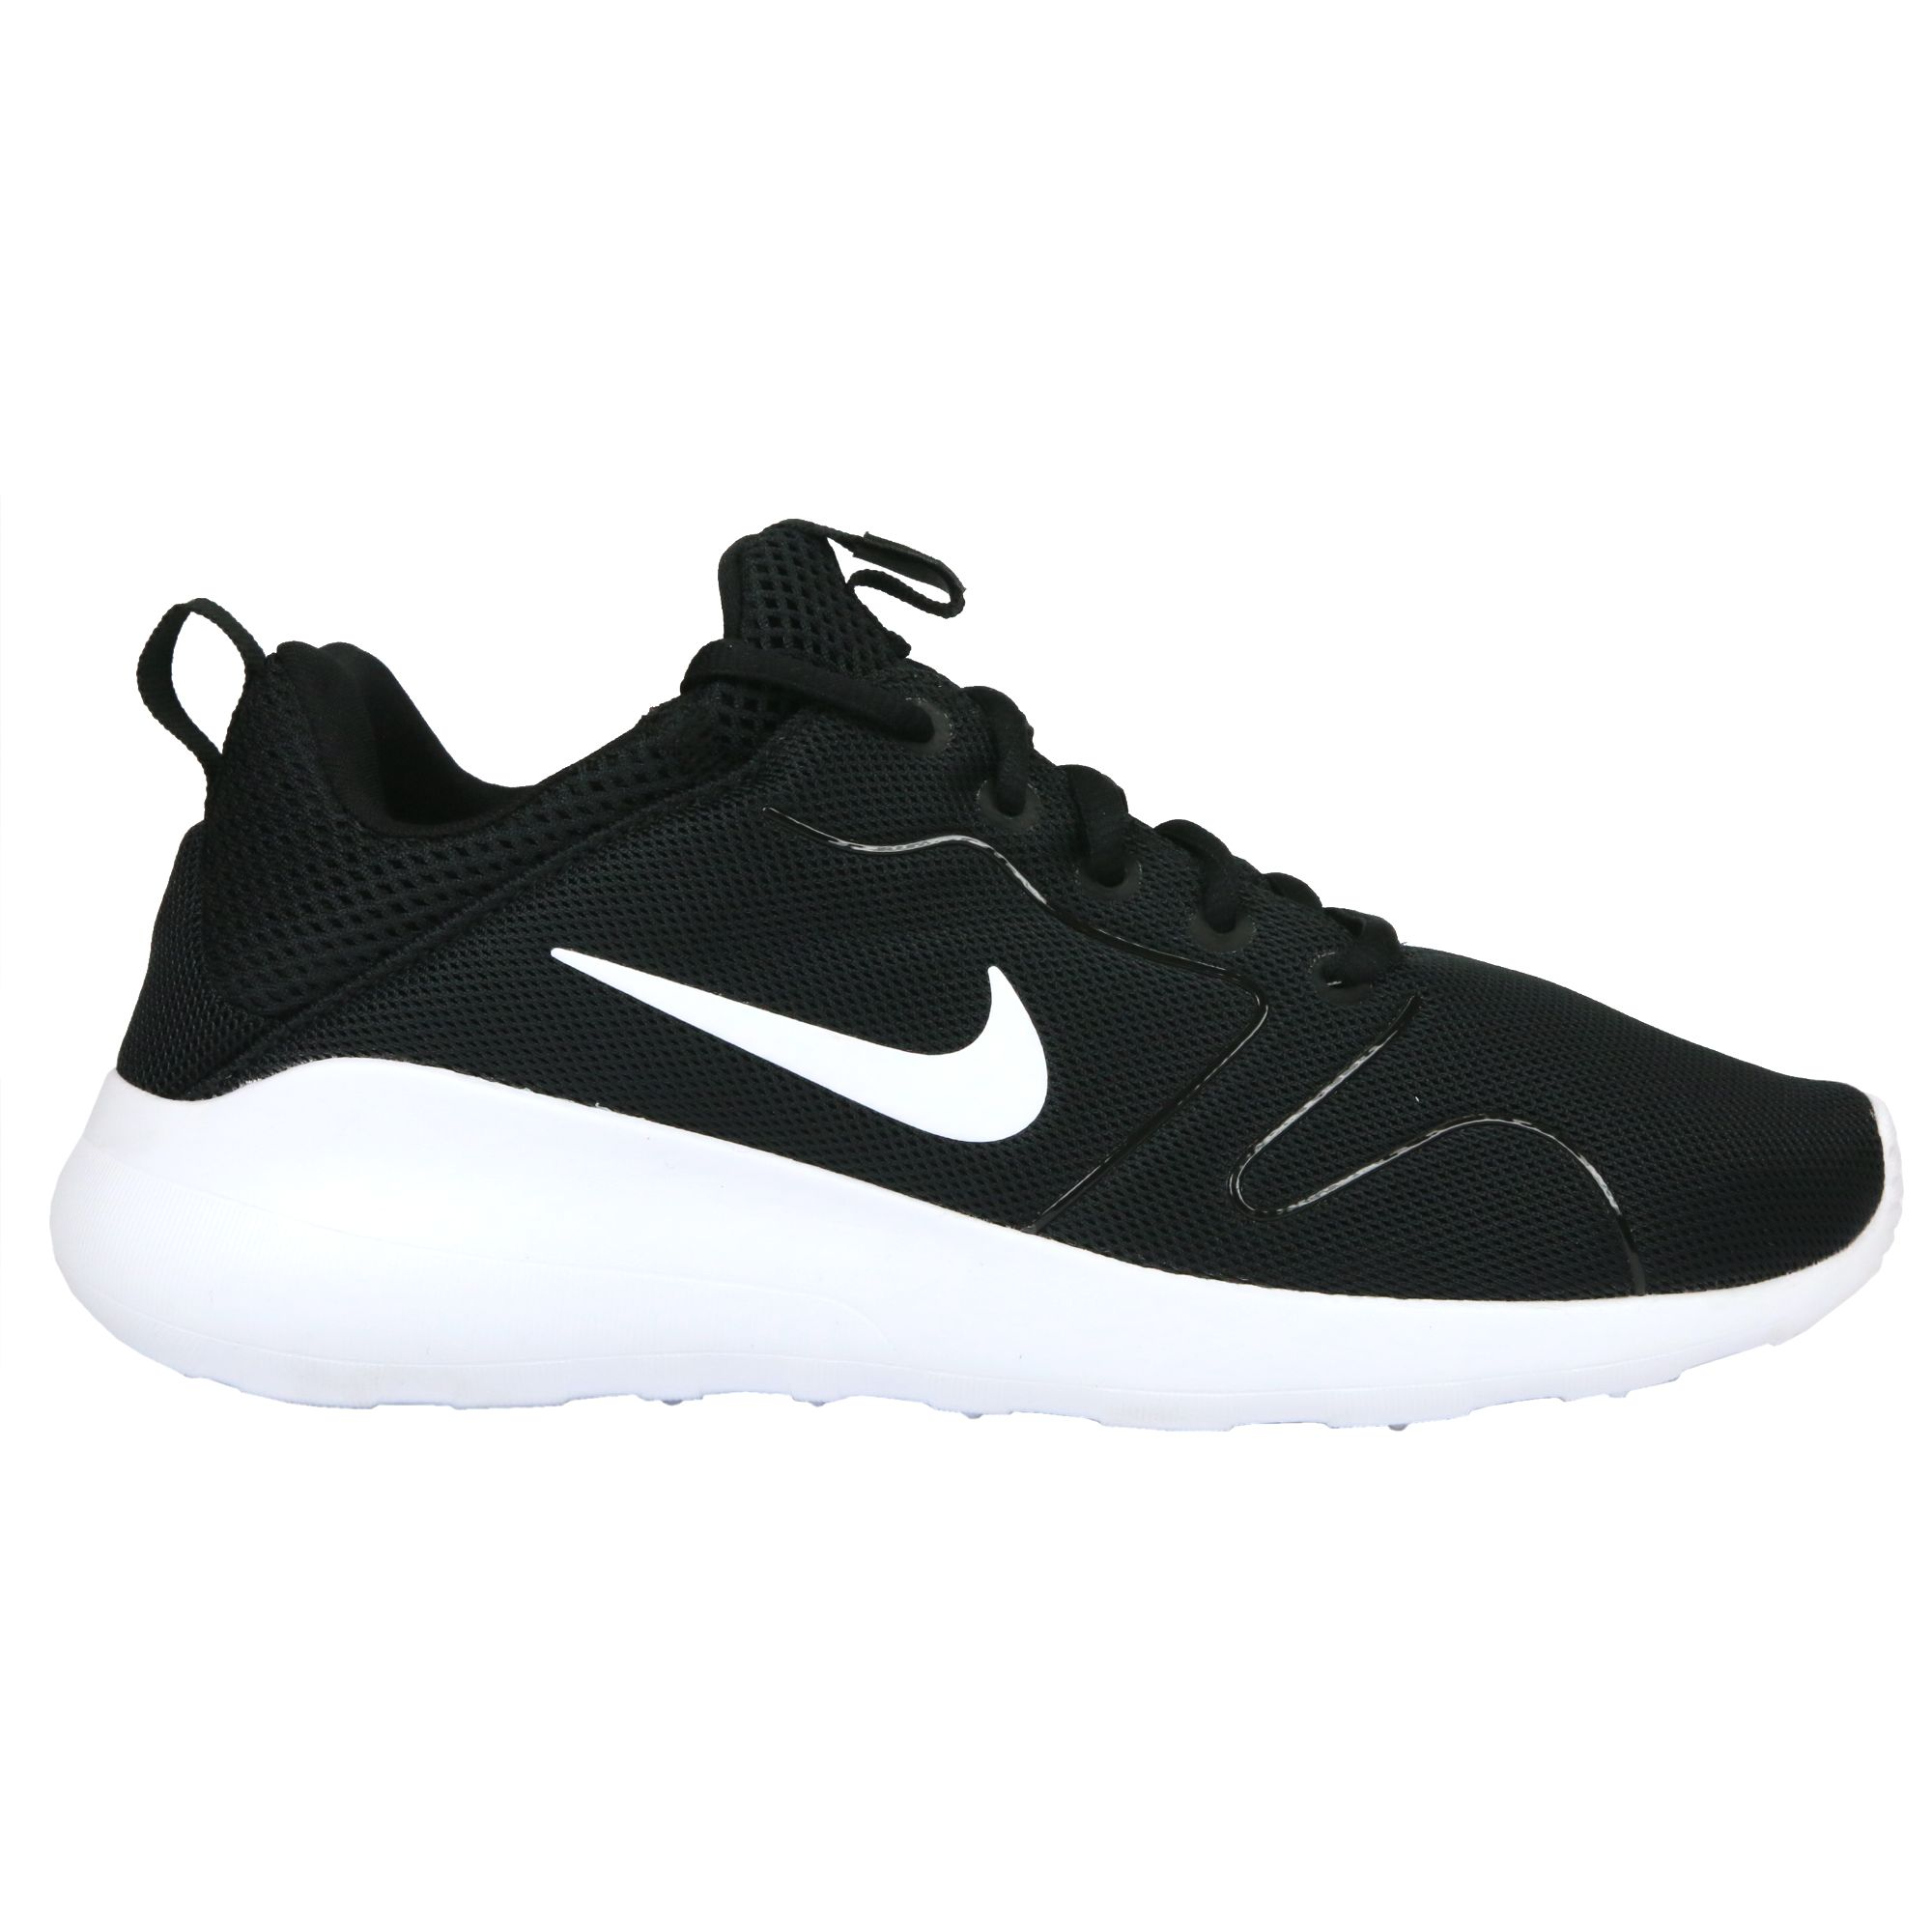 nike kaishi 2 0 schuhe turnschuhe sneaker herren run roshe ebay. Black Bedroom Furniture Sets. Home Design Ideas